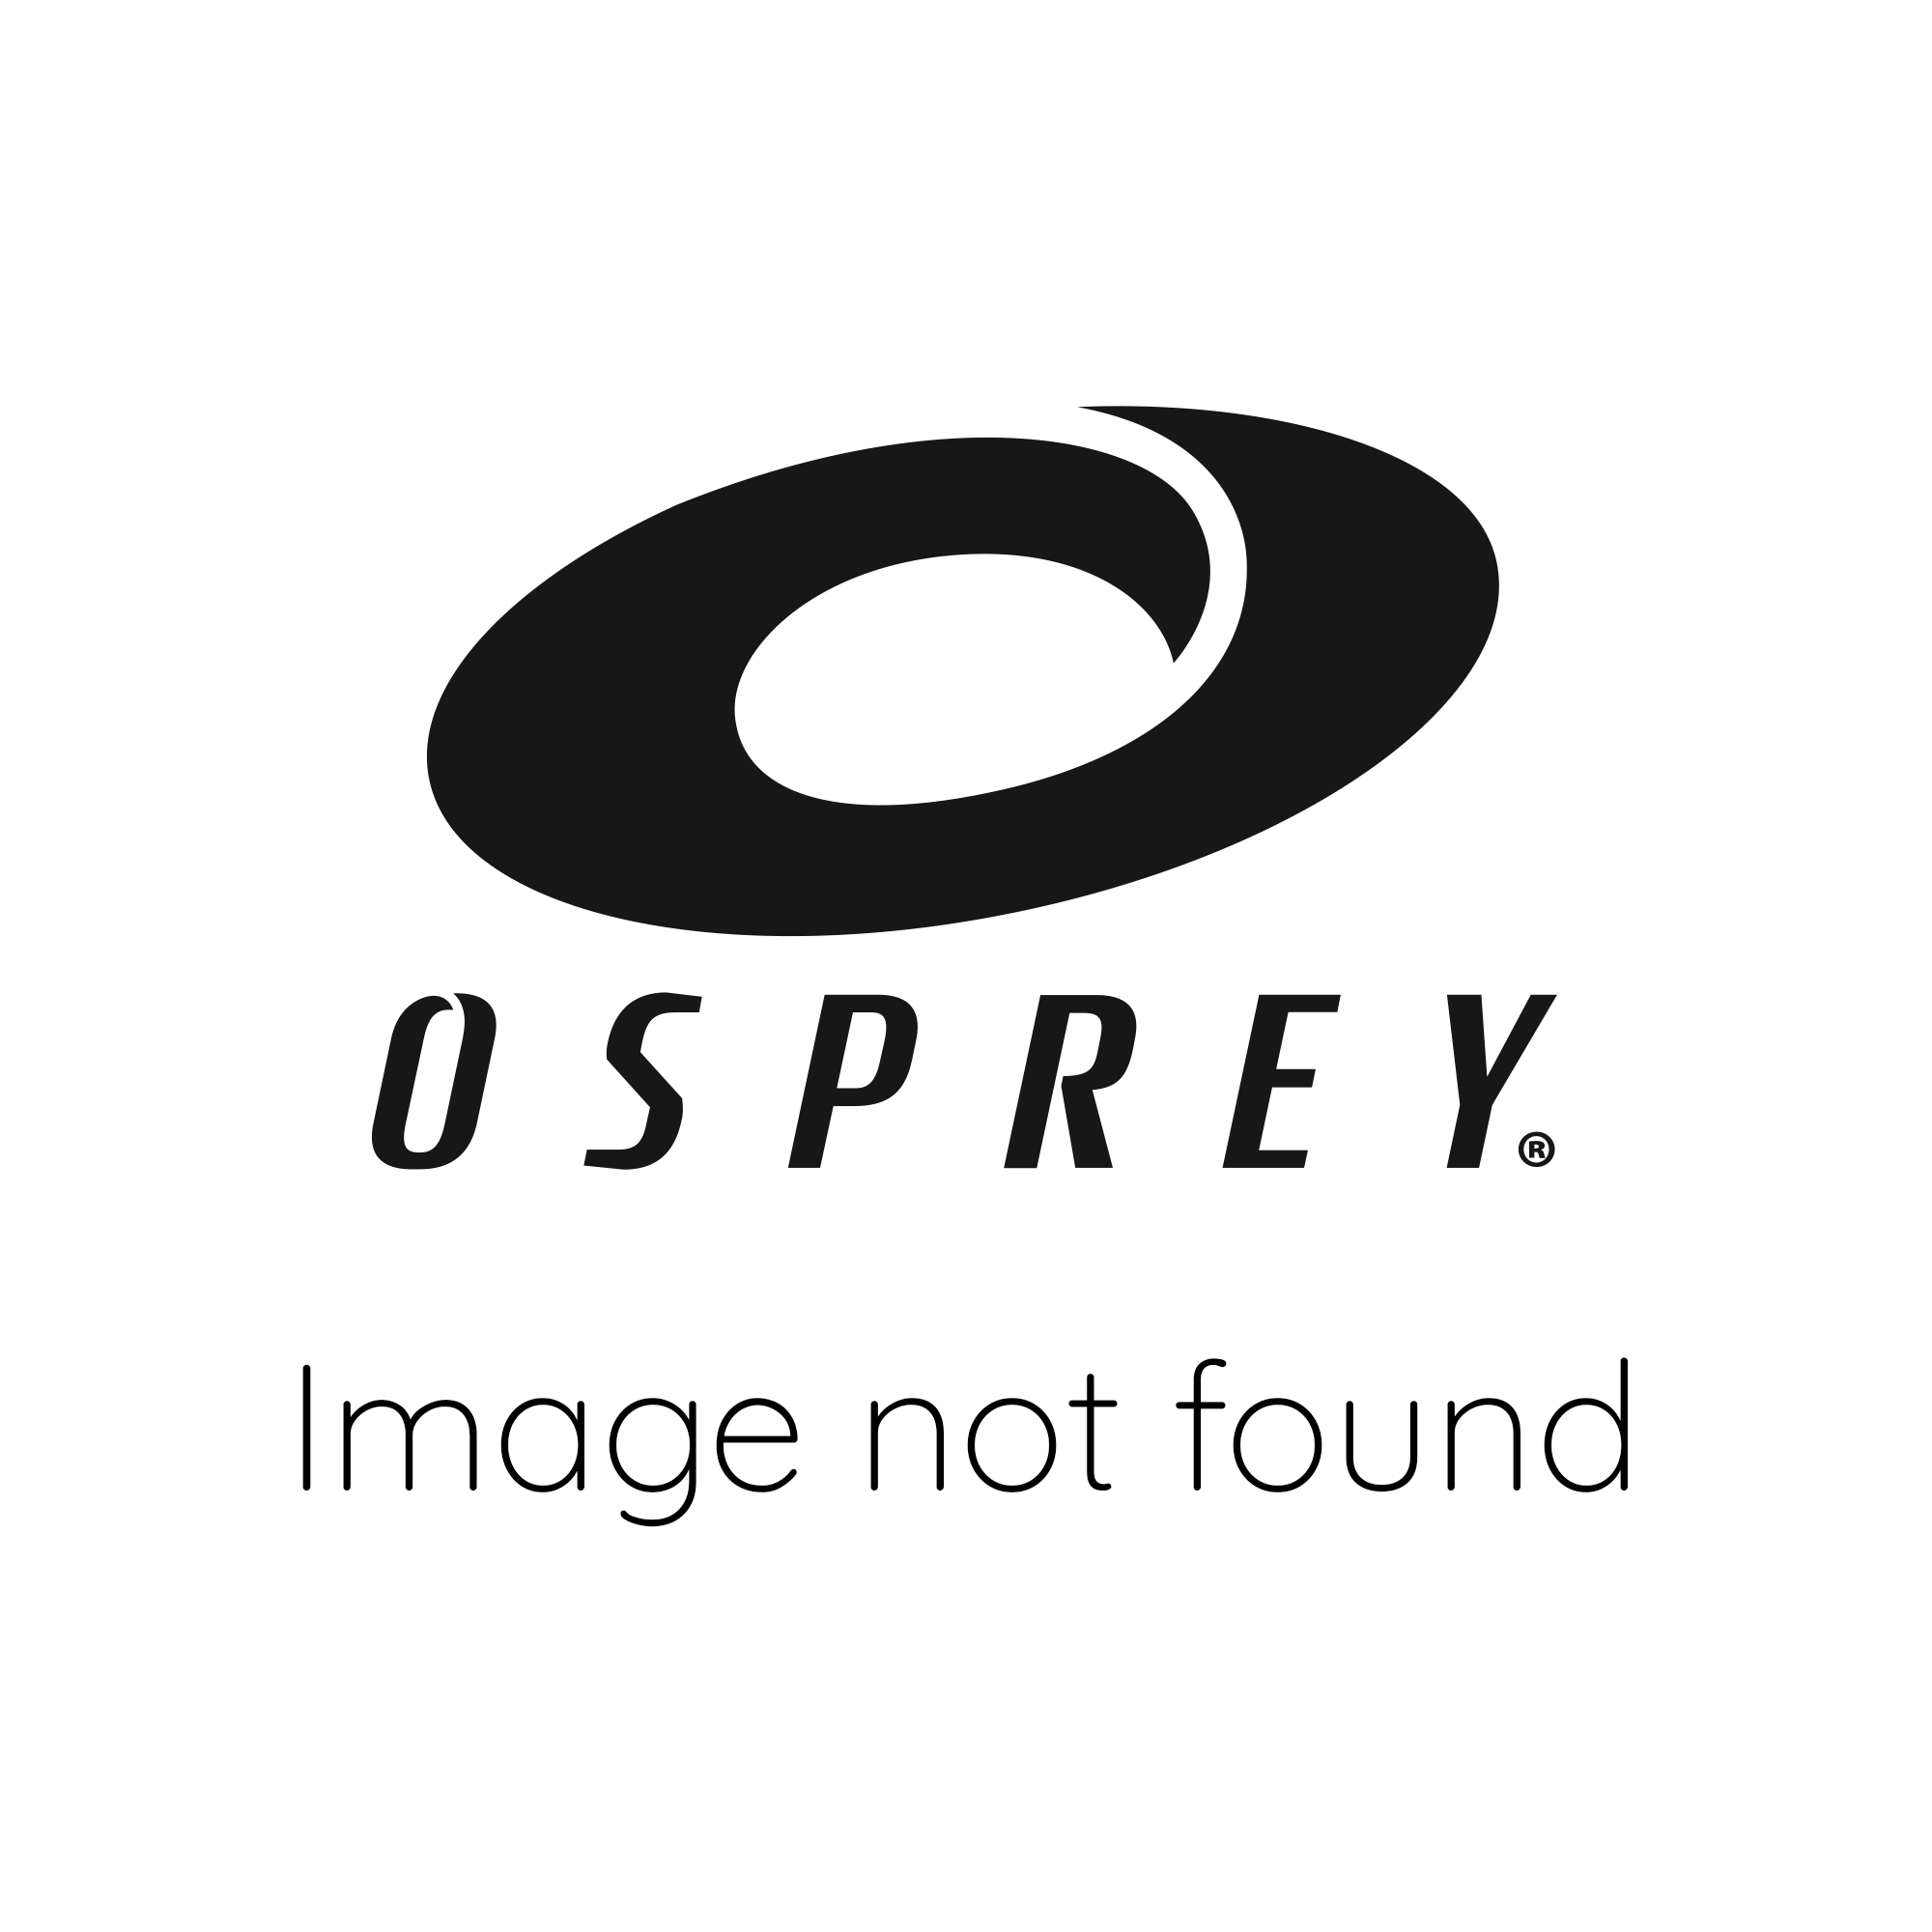 7ft 2inch Beginner Foam Surfboard - Learn To Surf